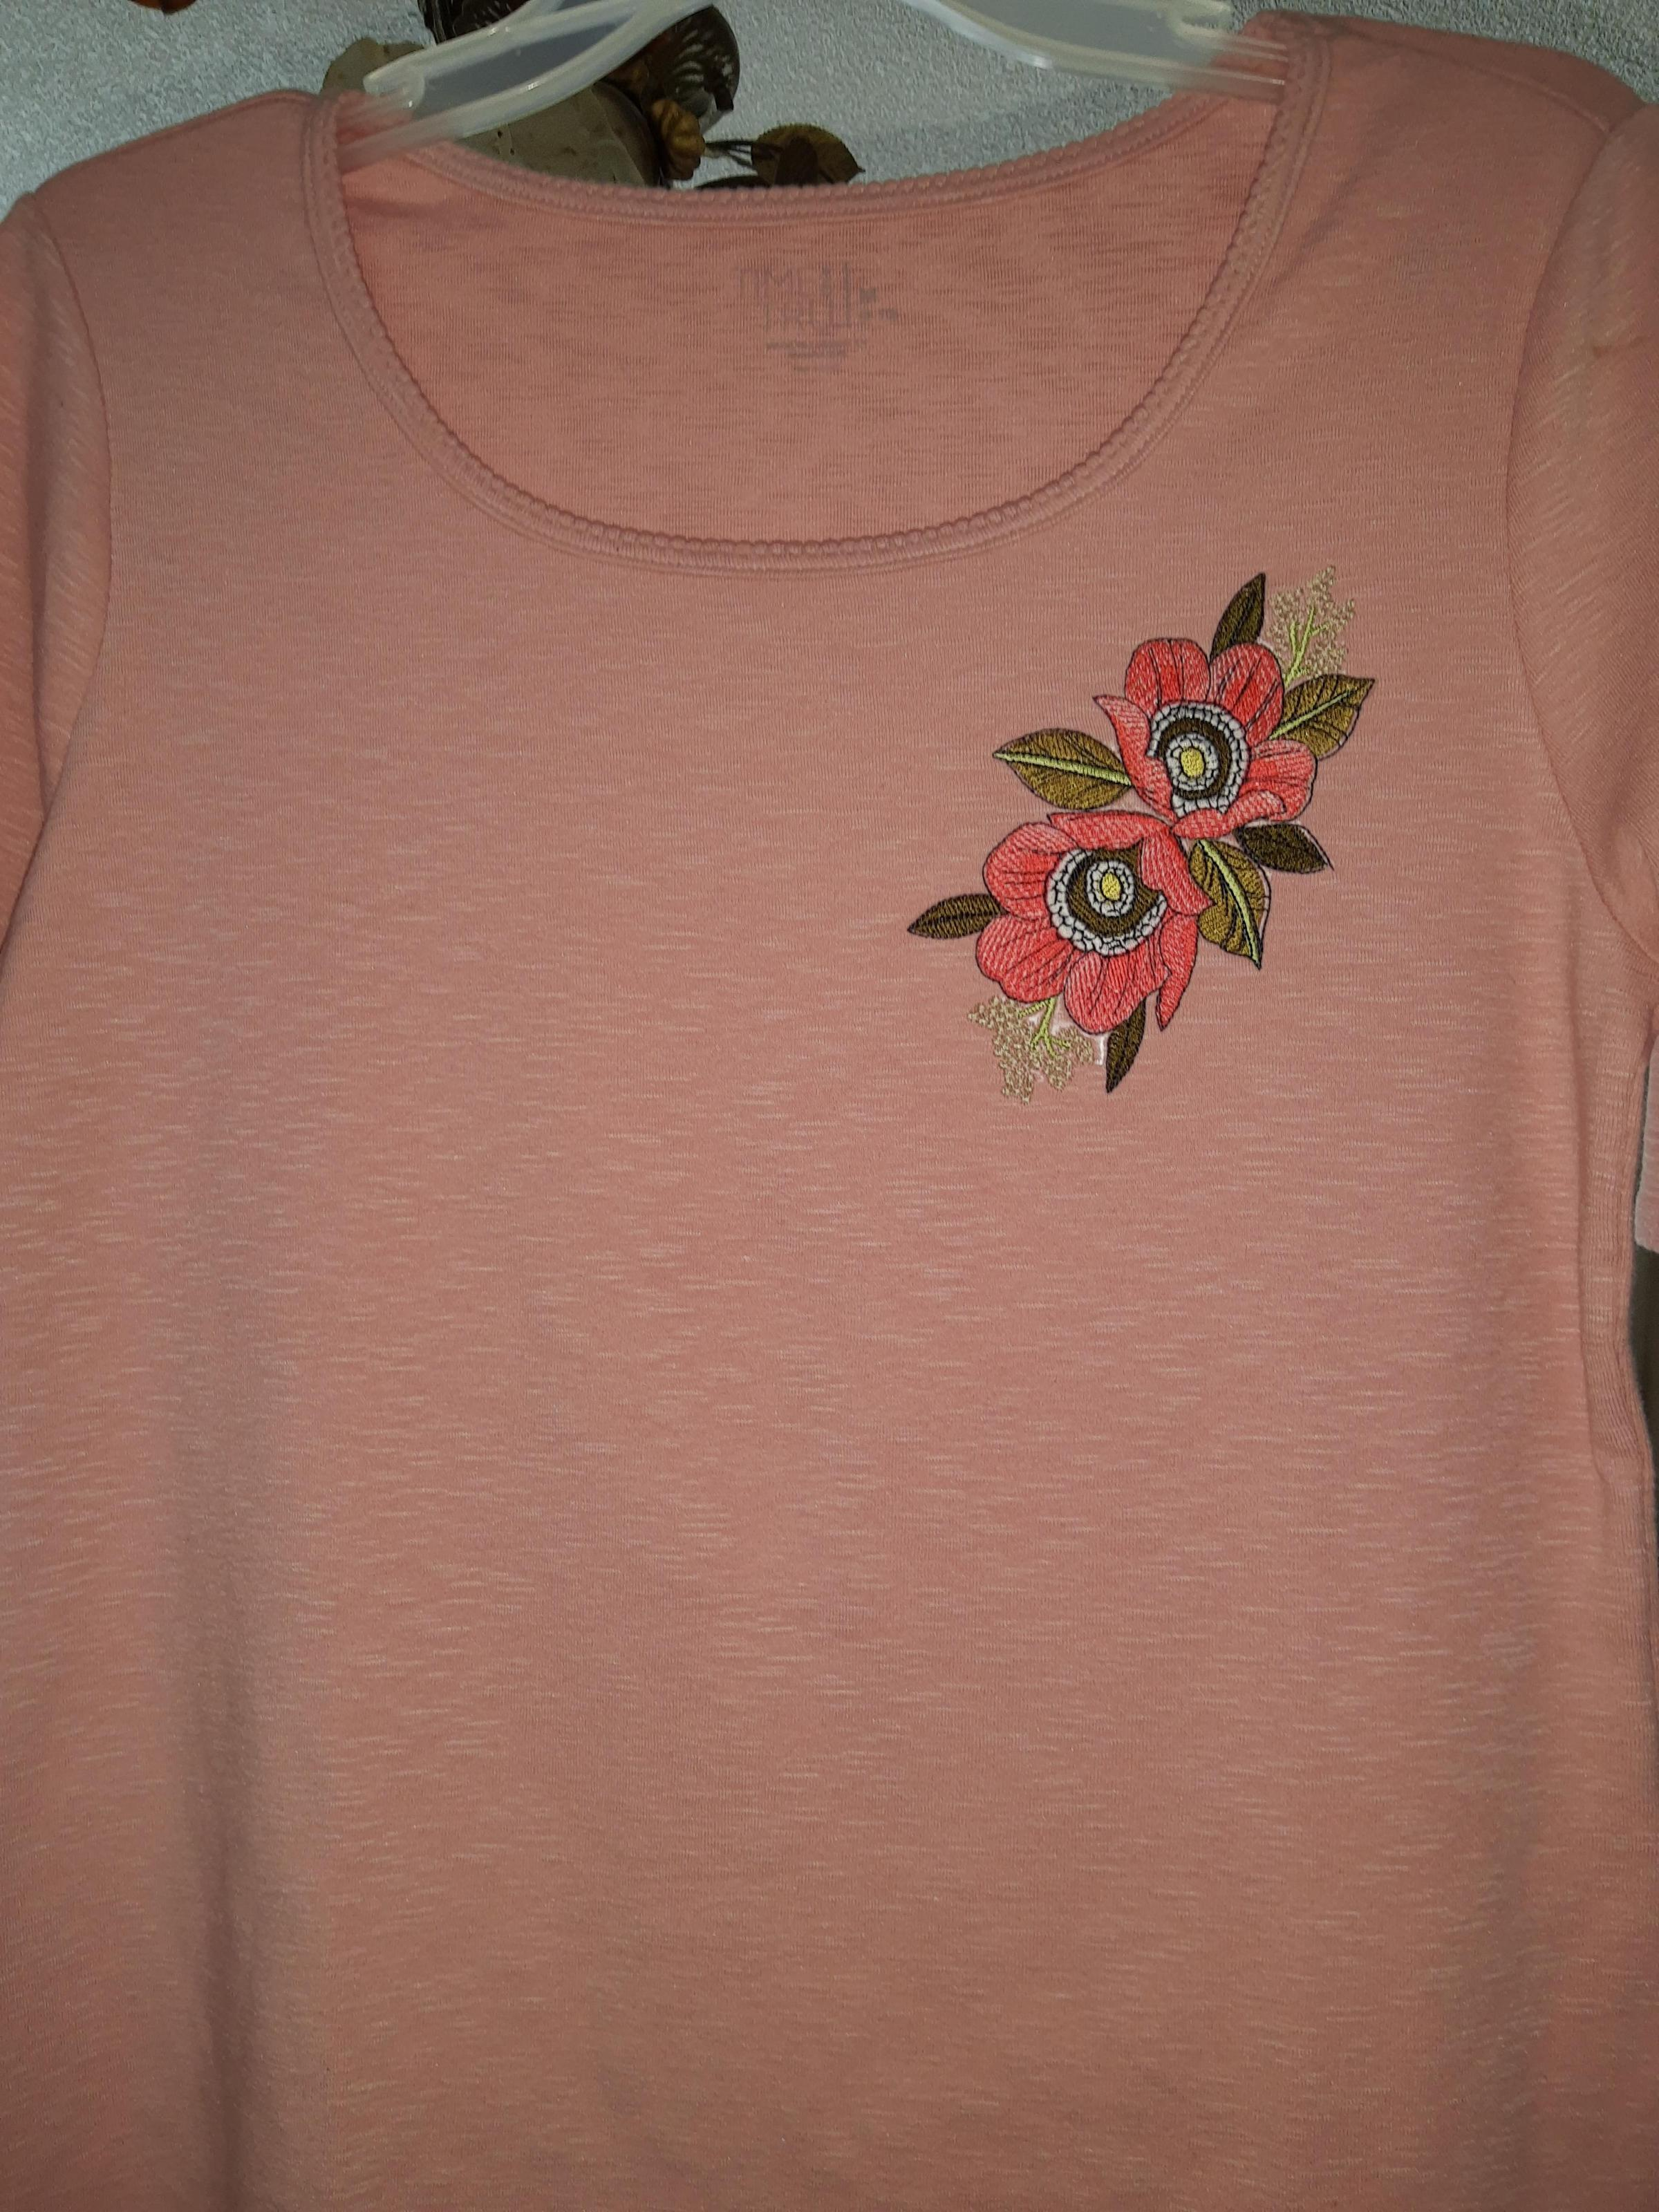 Embroidered t-shirt with Dog-rose design